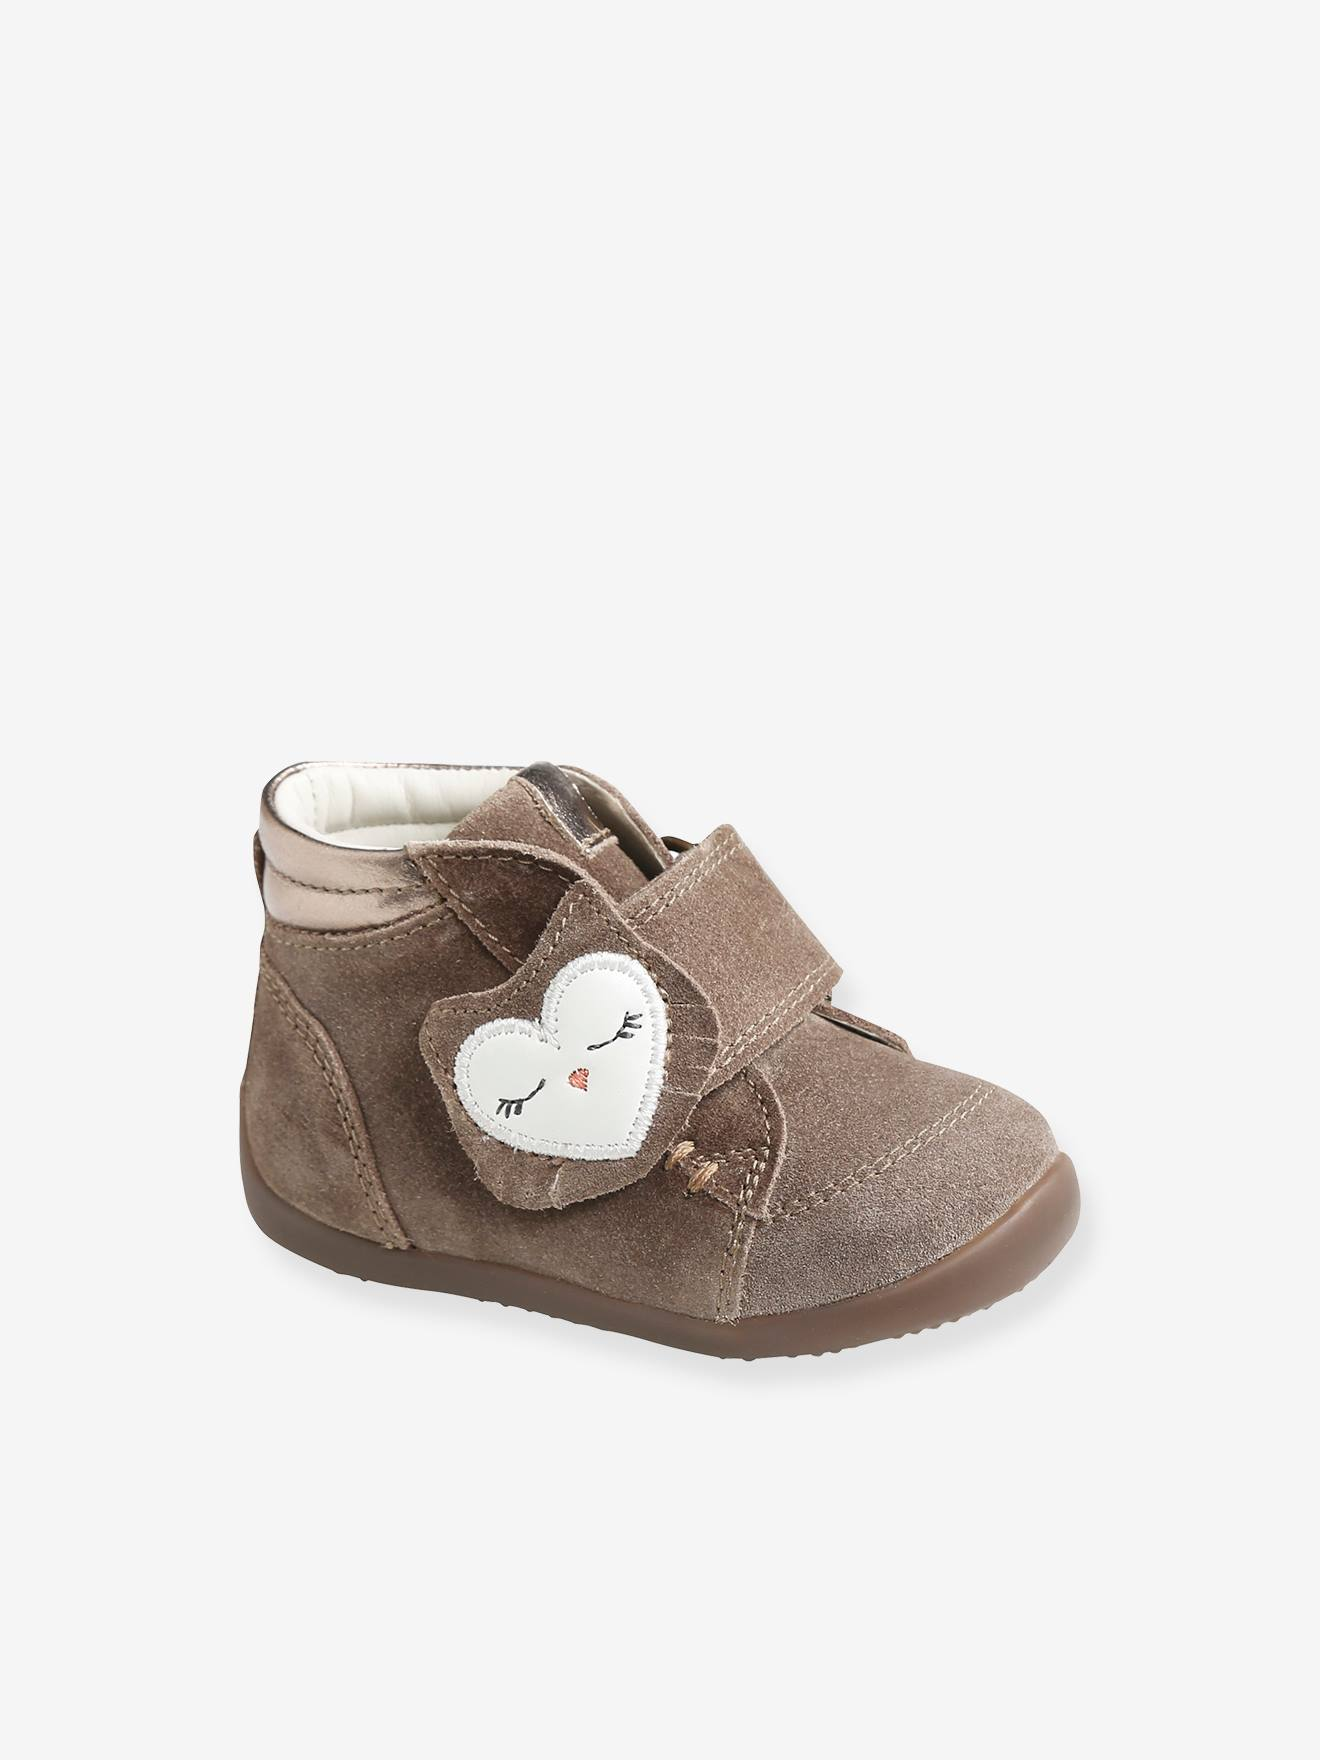 Leather Ankle Boots for Baby Girls